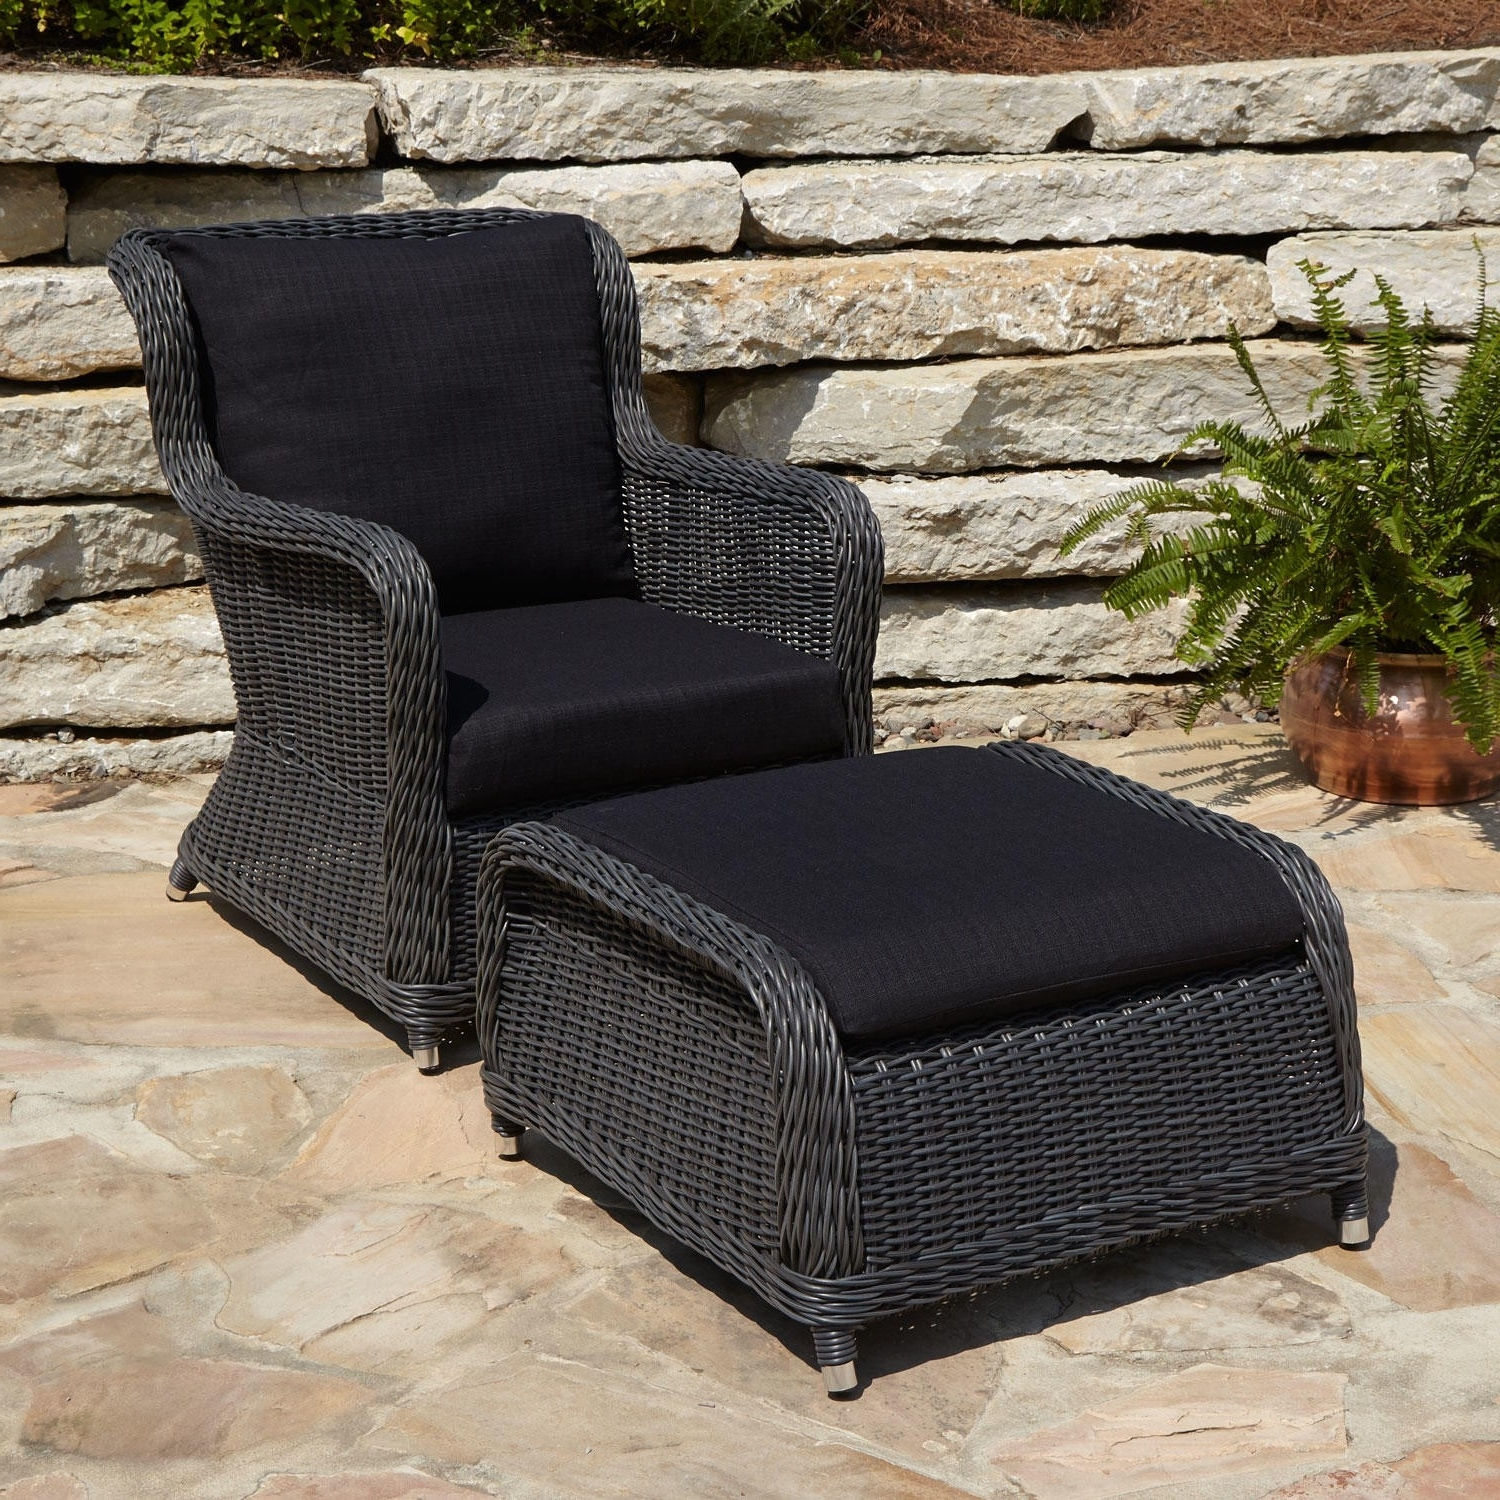 Most Popular Outdoor : Outdoor Lounger Sofa Lowes Lounge Chairs Big Lots Lounge Inside Chaise Lounge Chairs At Big Lots (View 10 of 15)